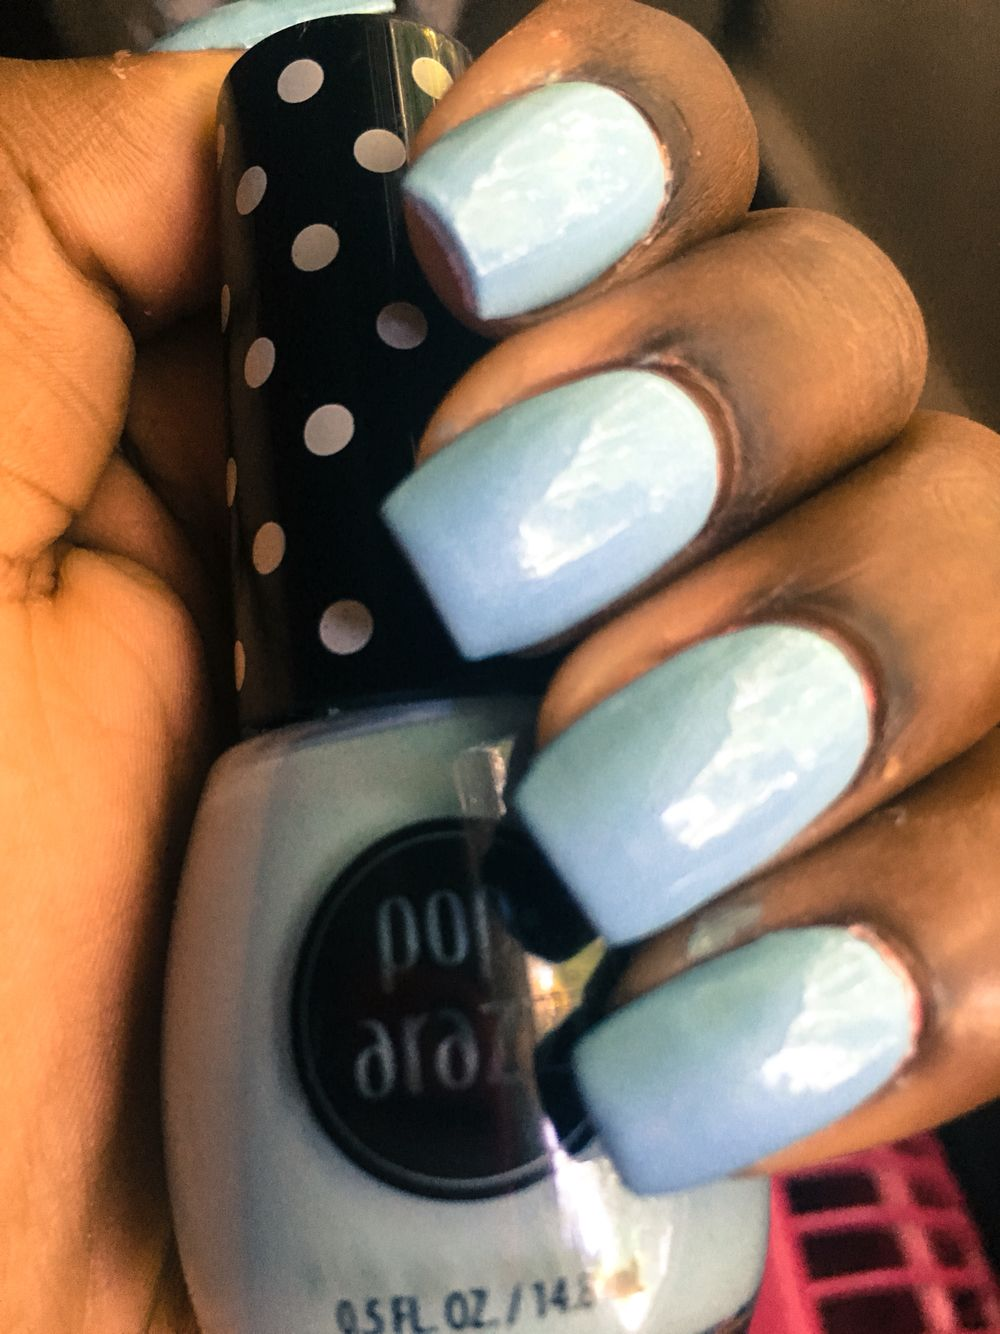 Poparazzi Nail Polish -- The Hue is Blue found @ CVS | Get Your ...